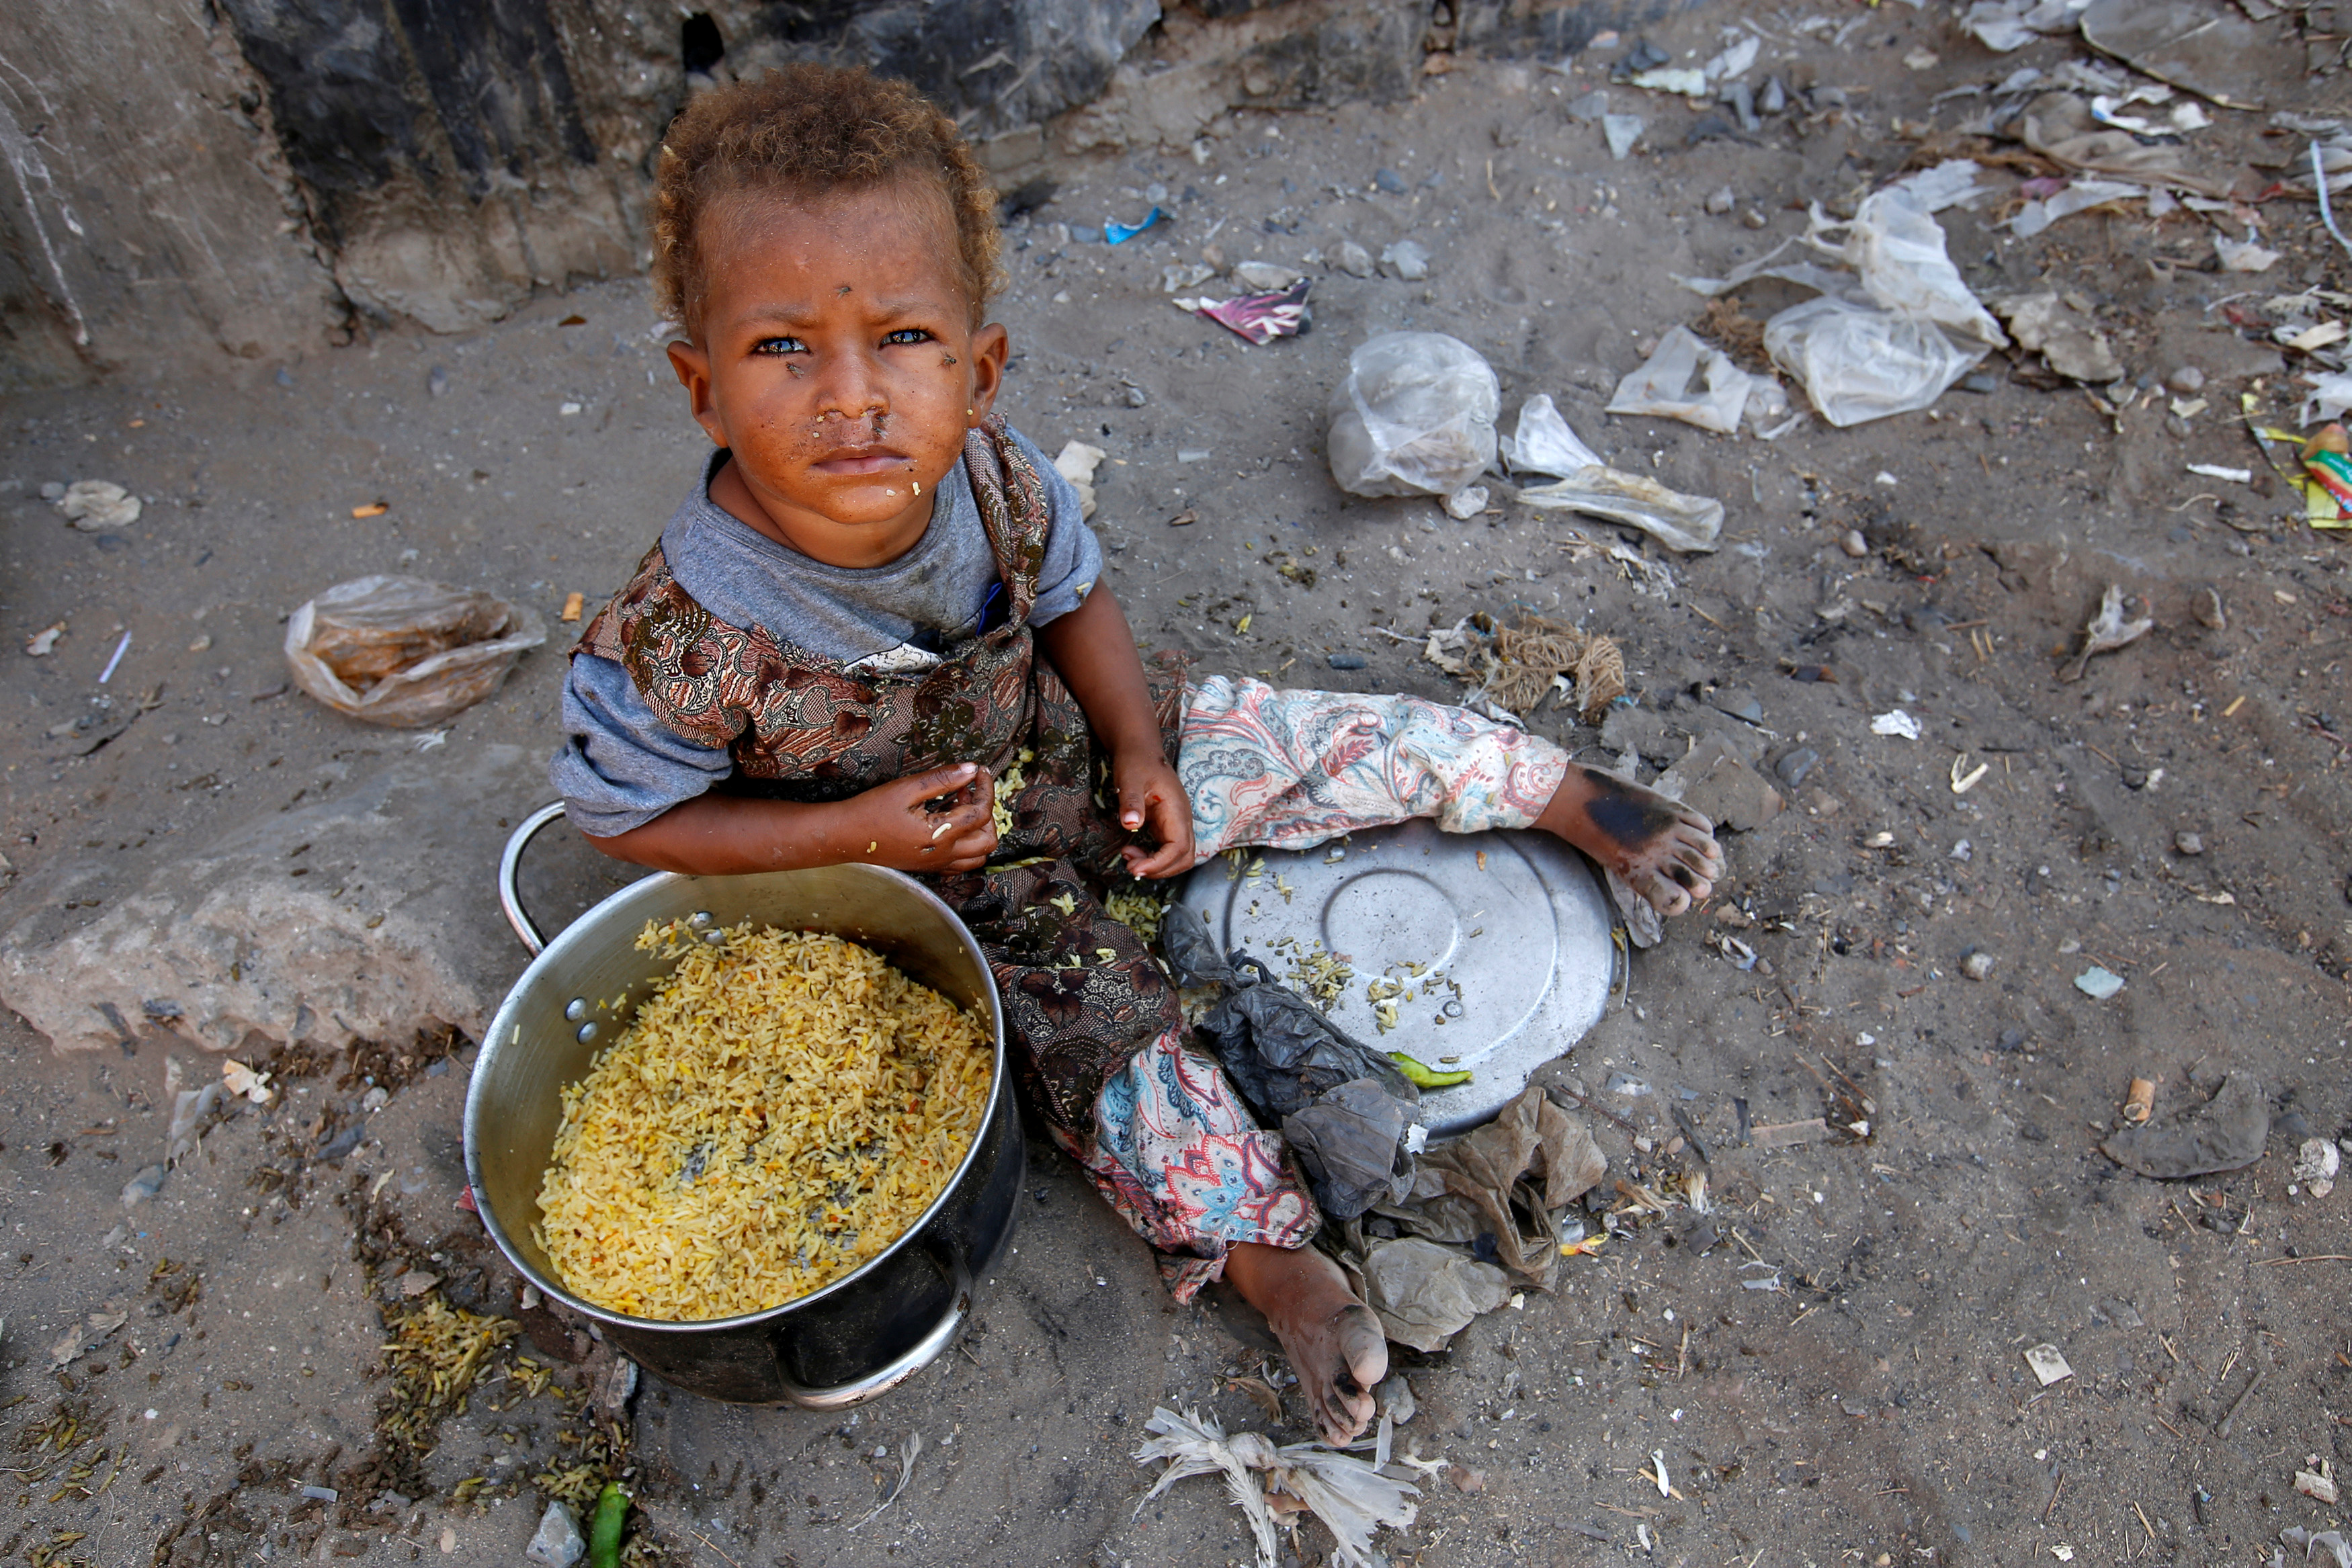 A girl displaced by the war in the northwestern areas of Yemen eats outside her family's makeshift hut on a street in the Red Sea port city of Hodeida, Yemen December 25, 2017.